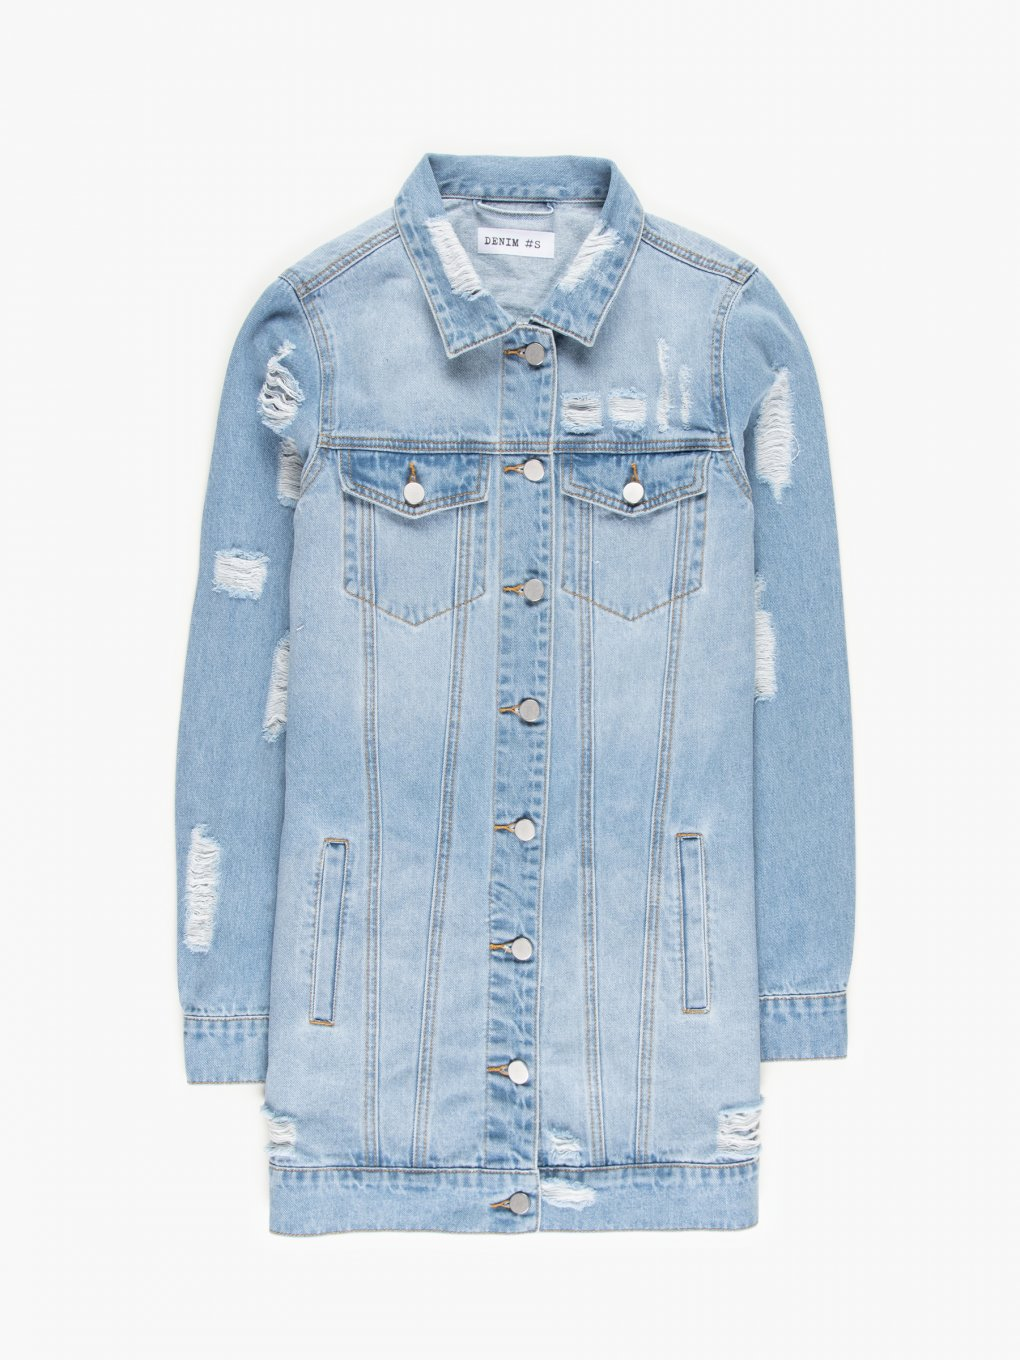 Damaged denim jacket